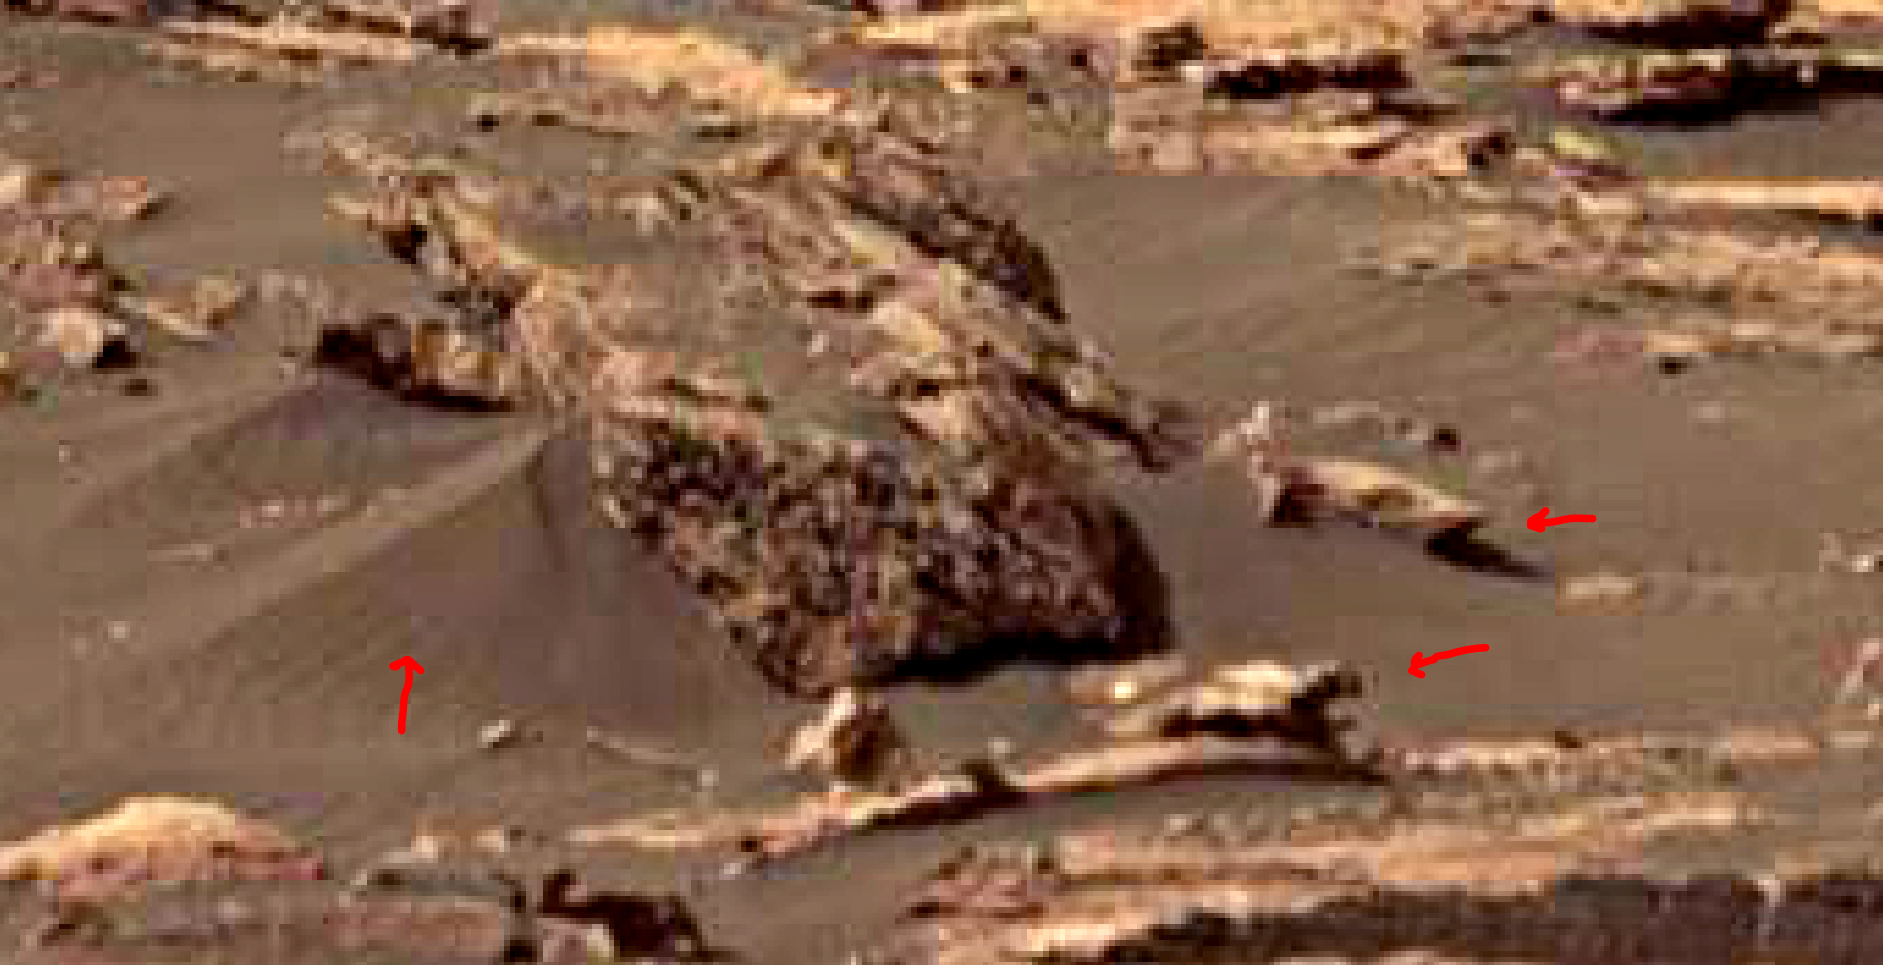 mars-sol-1507-anomaly-artifacts-3-was-life-on-mars